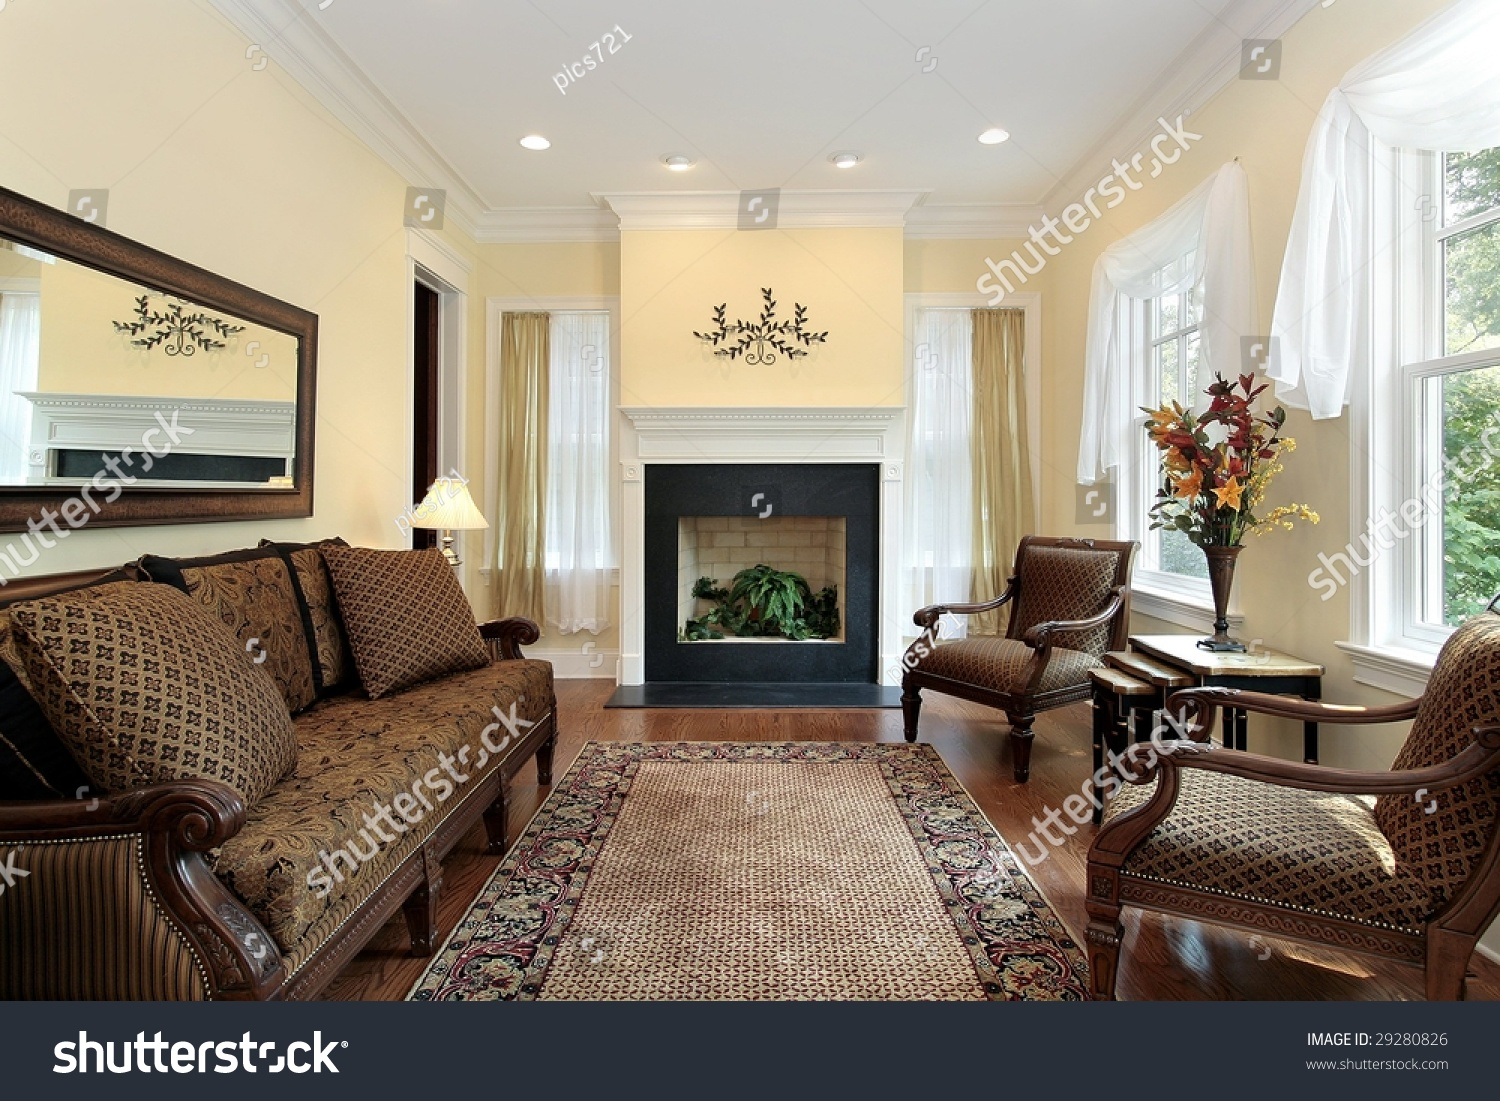 Luxury Living Room With Fireplace Stock Photo 29280826